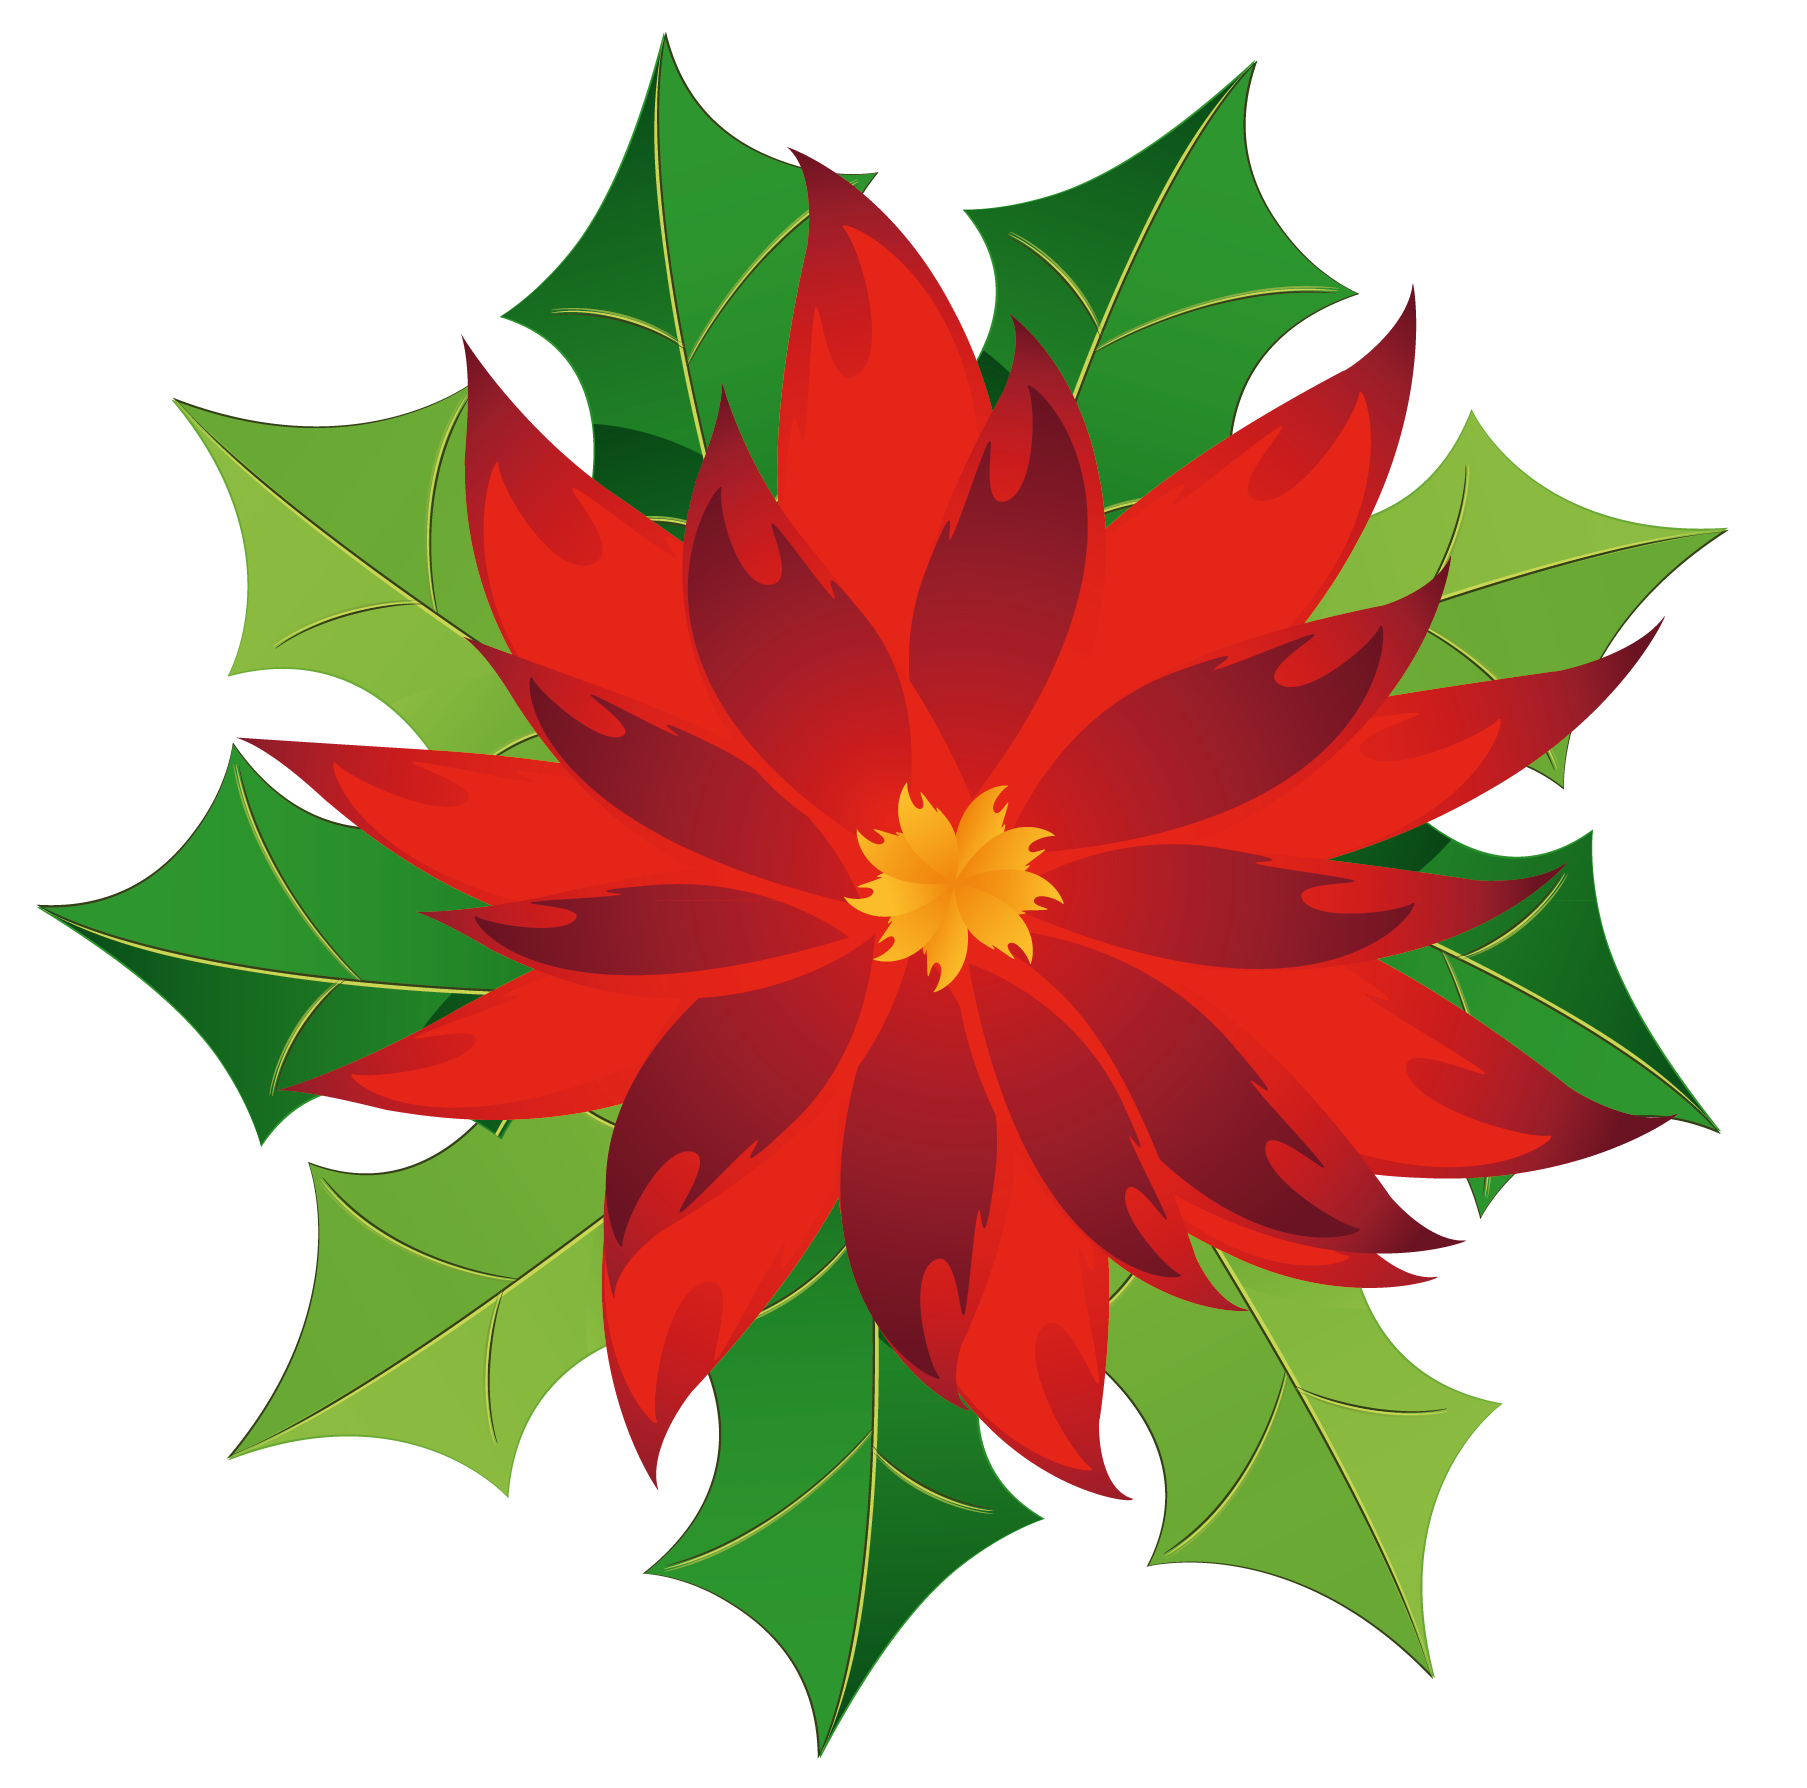 Poinsettia Pictures - Cliparts.co